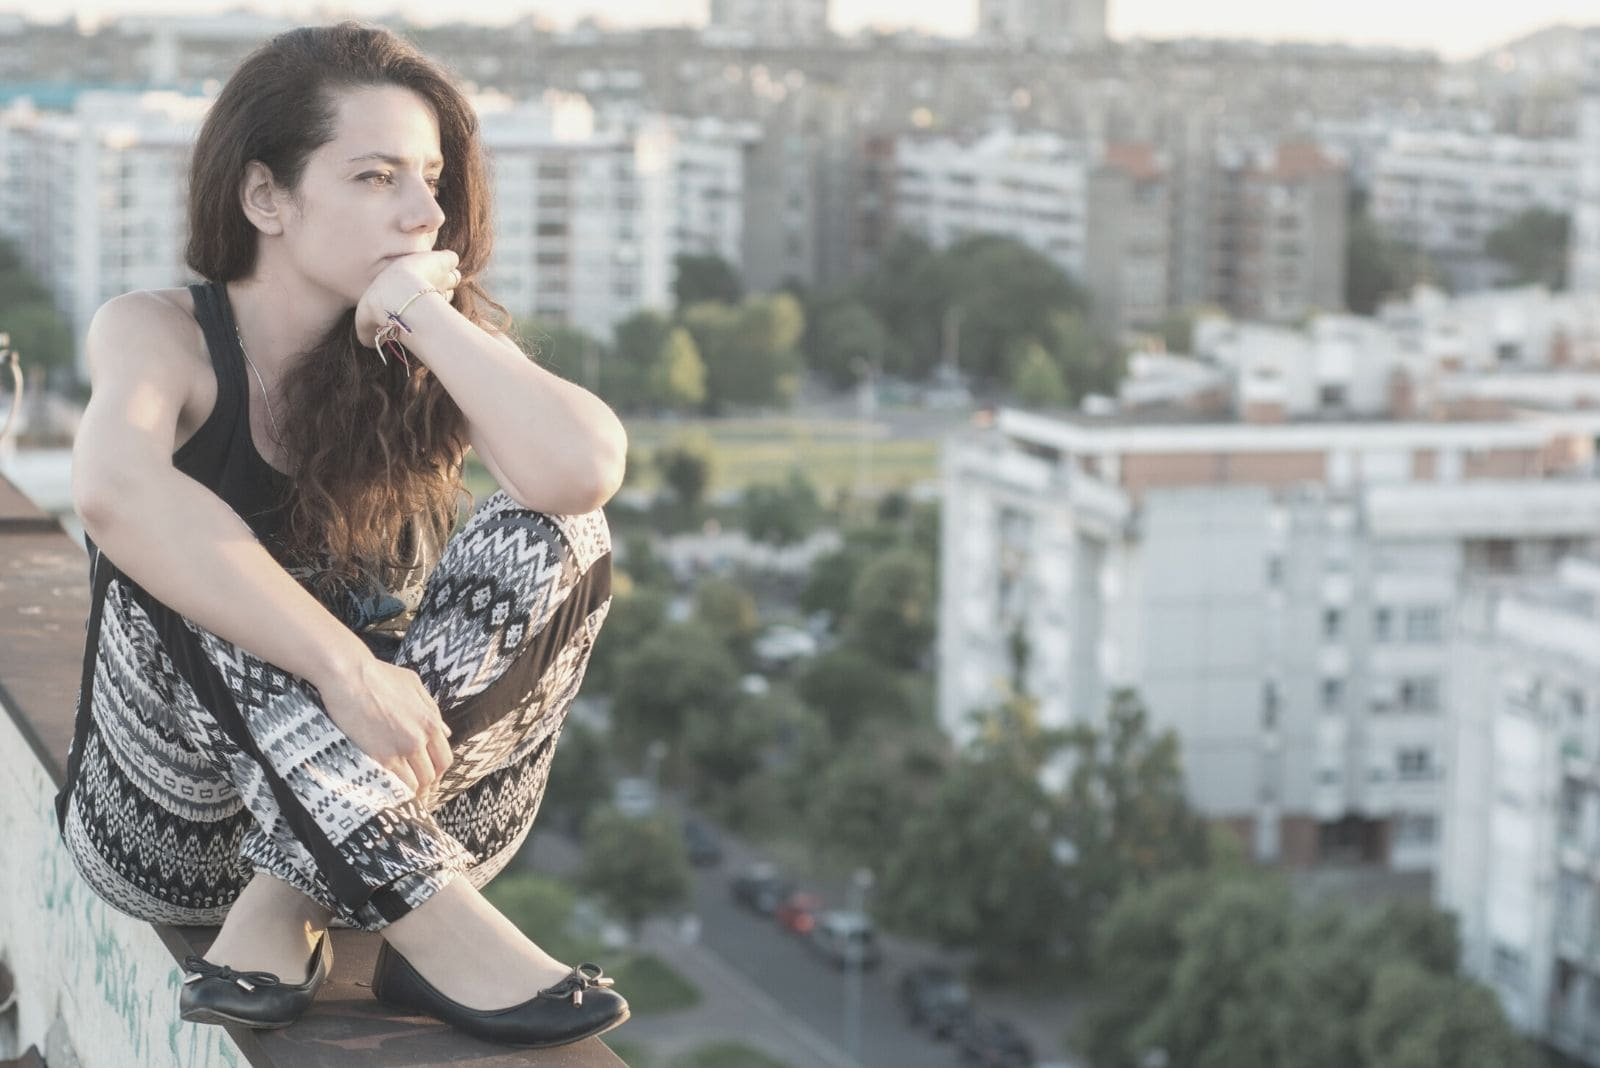 woman sitting on top of the ledge of the building thinking deeply